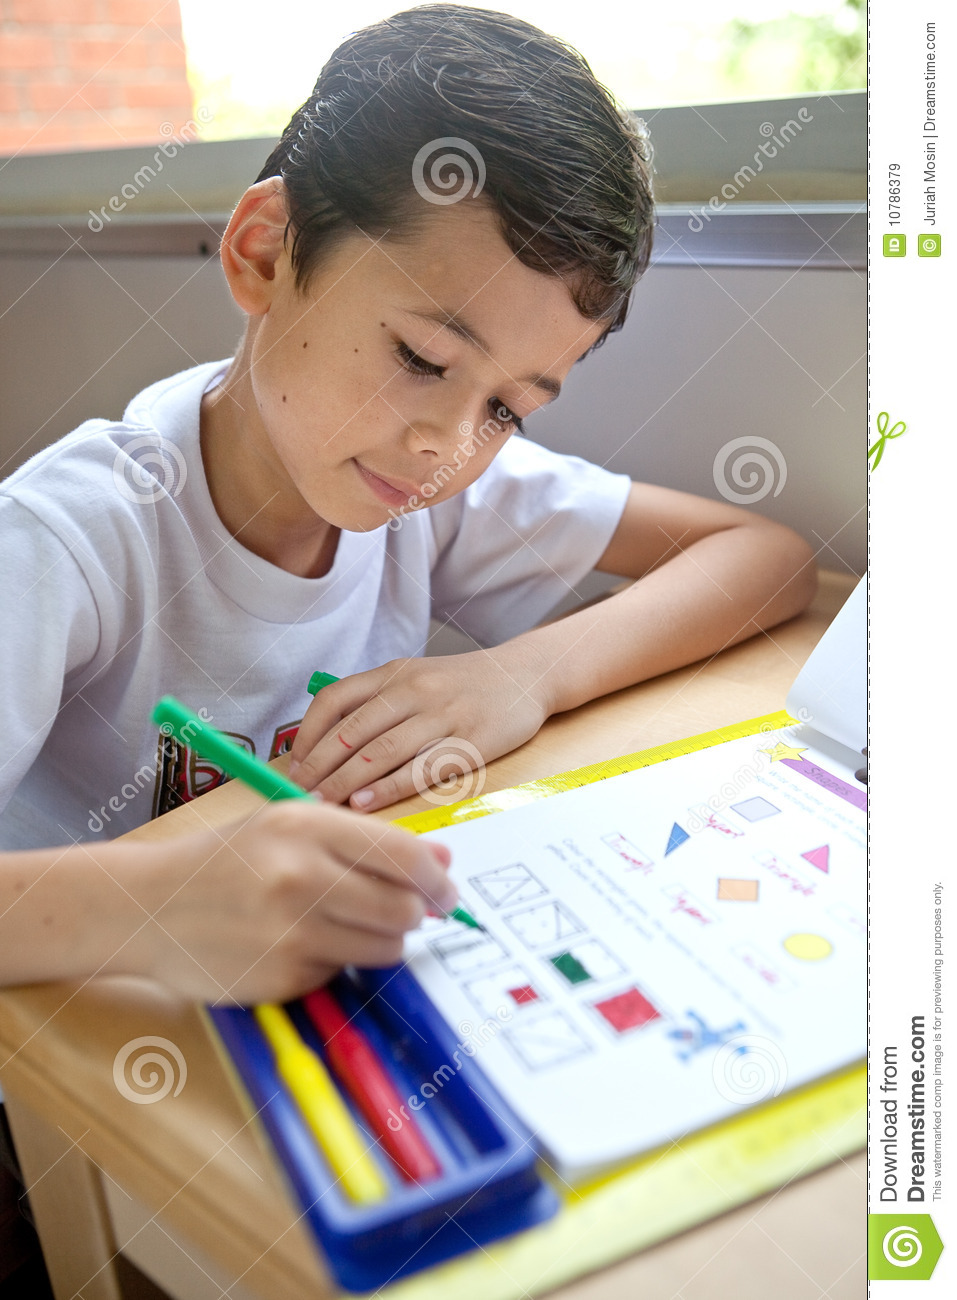 Clipart School Child